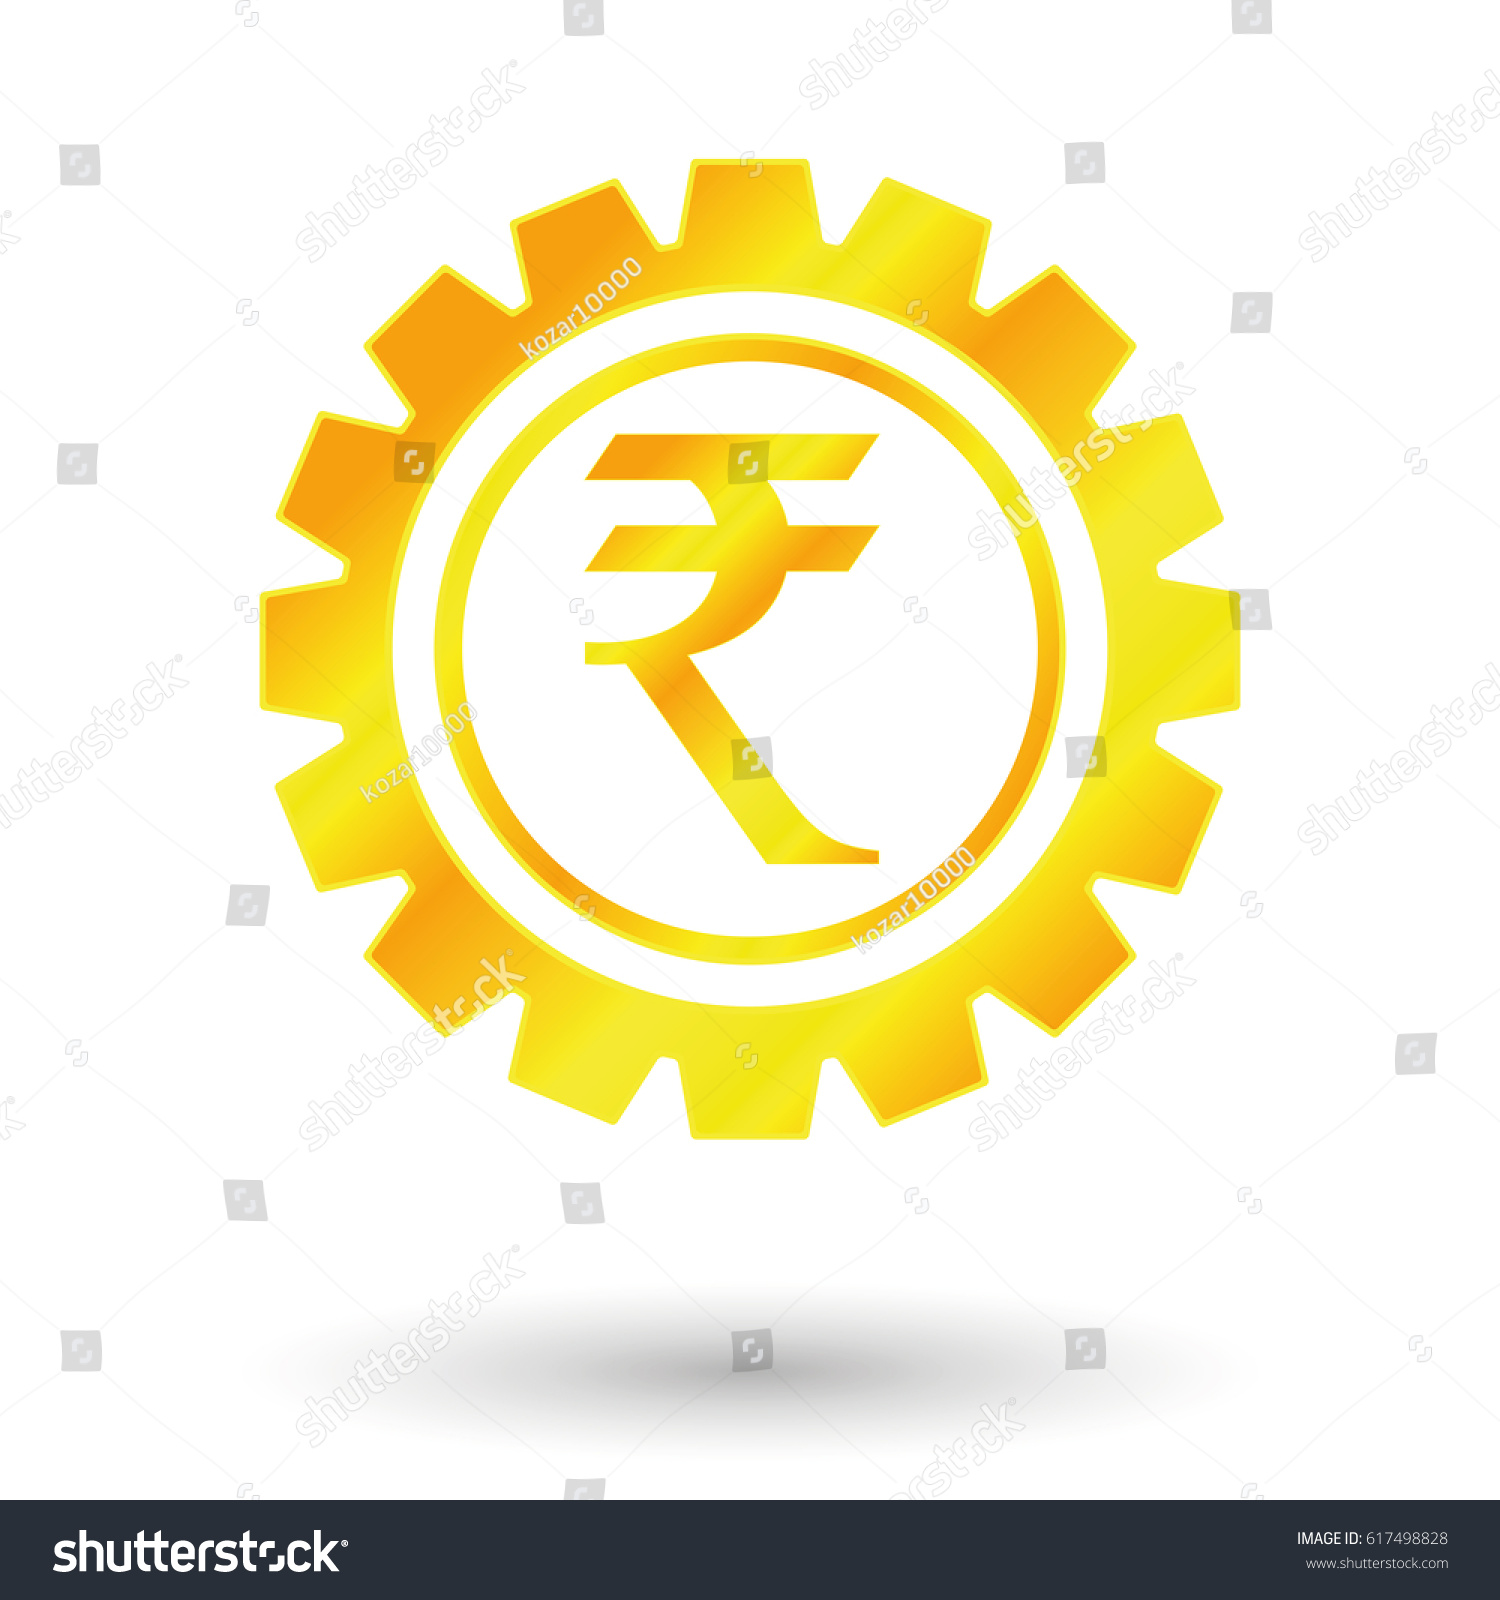 Symbol indian rupee gold money stock vector 617498828 shutterstock symbol indian rupee gold money buycottarizona Choice Image